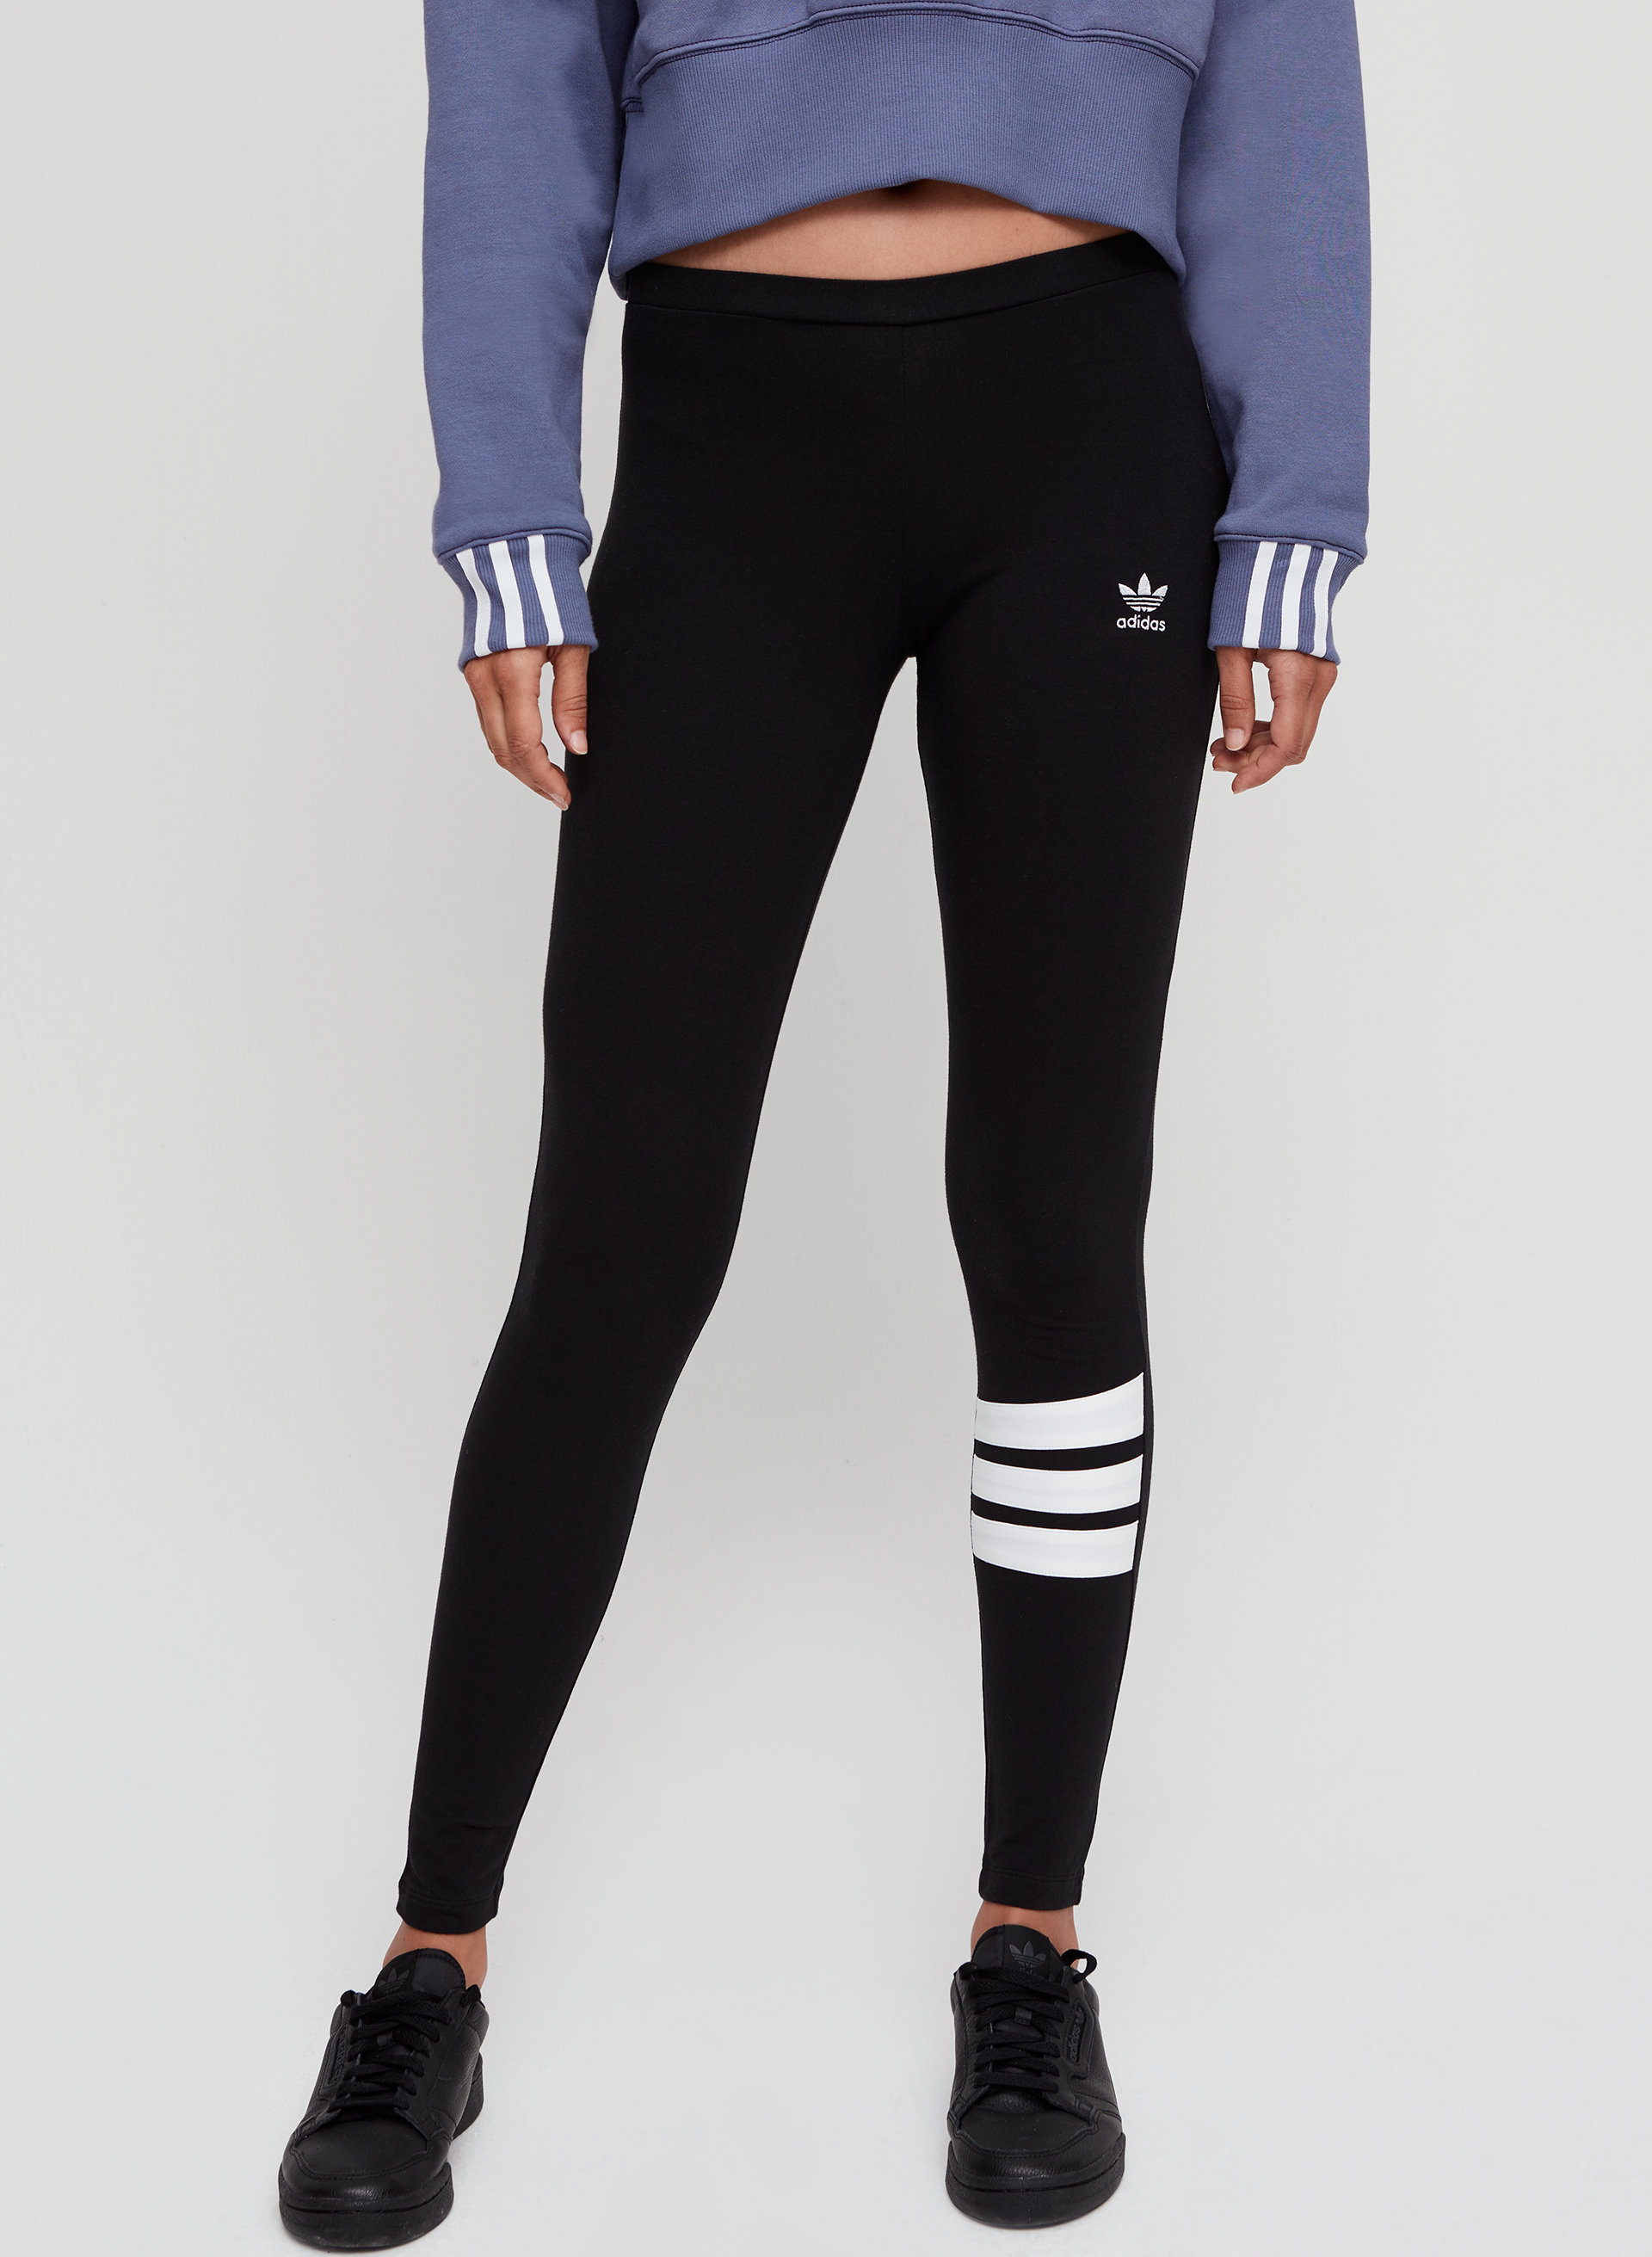 50% price best sale good looking adidas ADIDAS TIGHTS | Aritzia CA